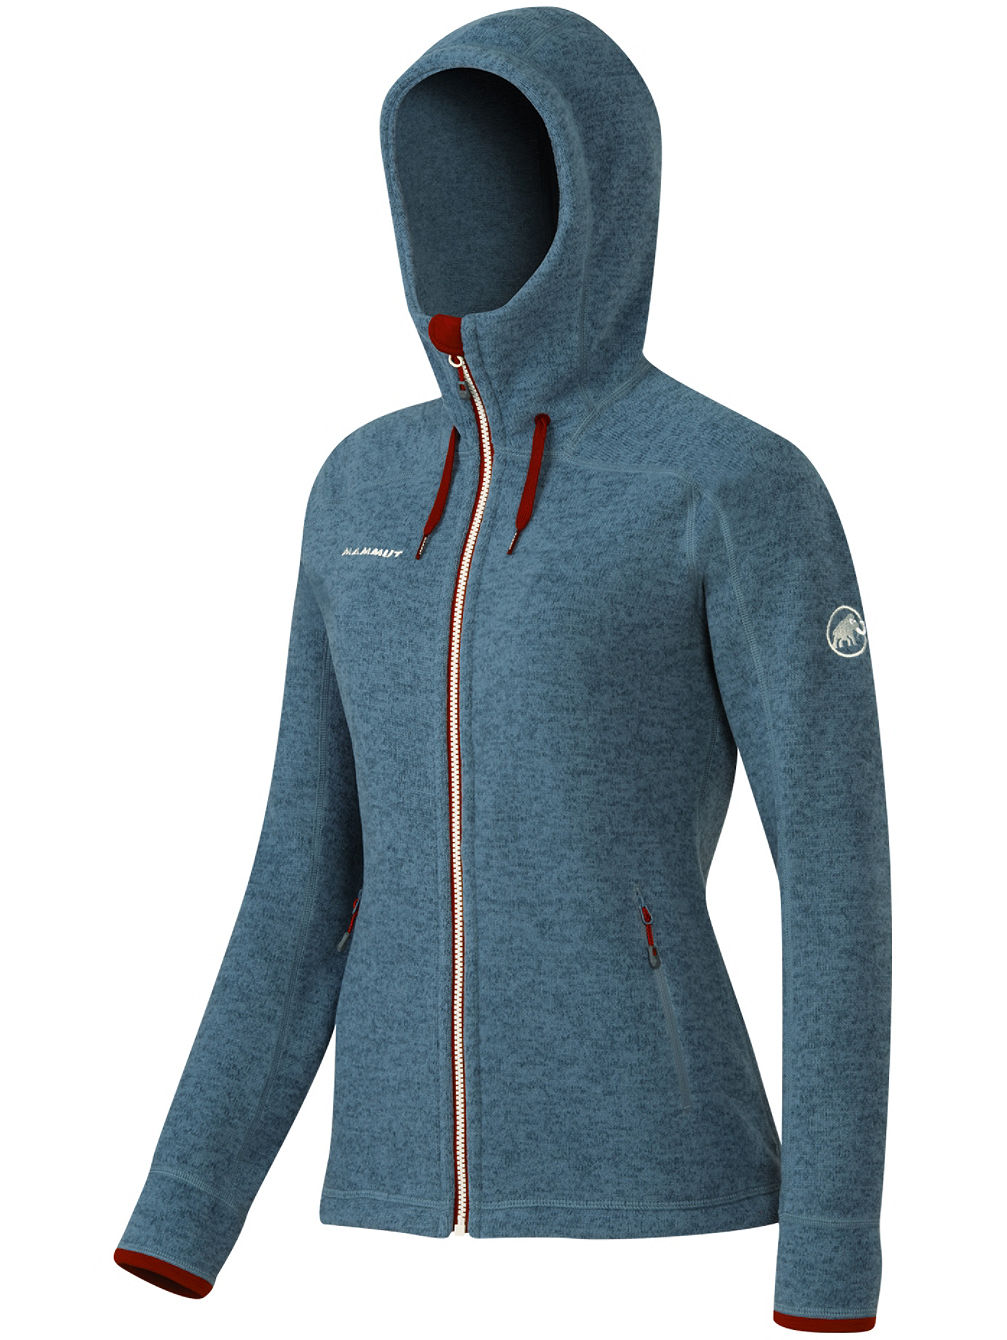 Buy Mammut Arctic Fleece Jacket online at blue-tomato.com